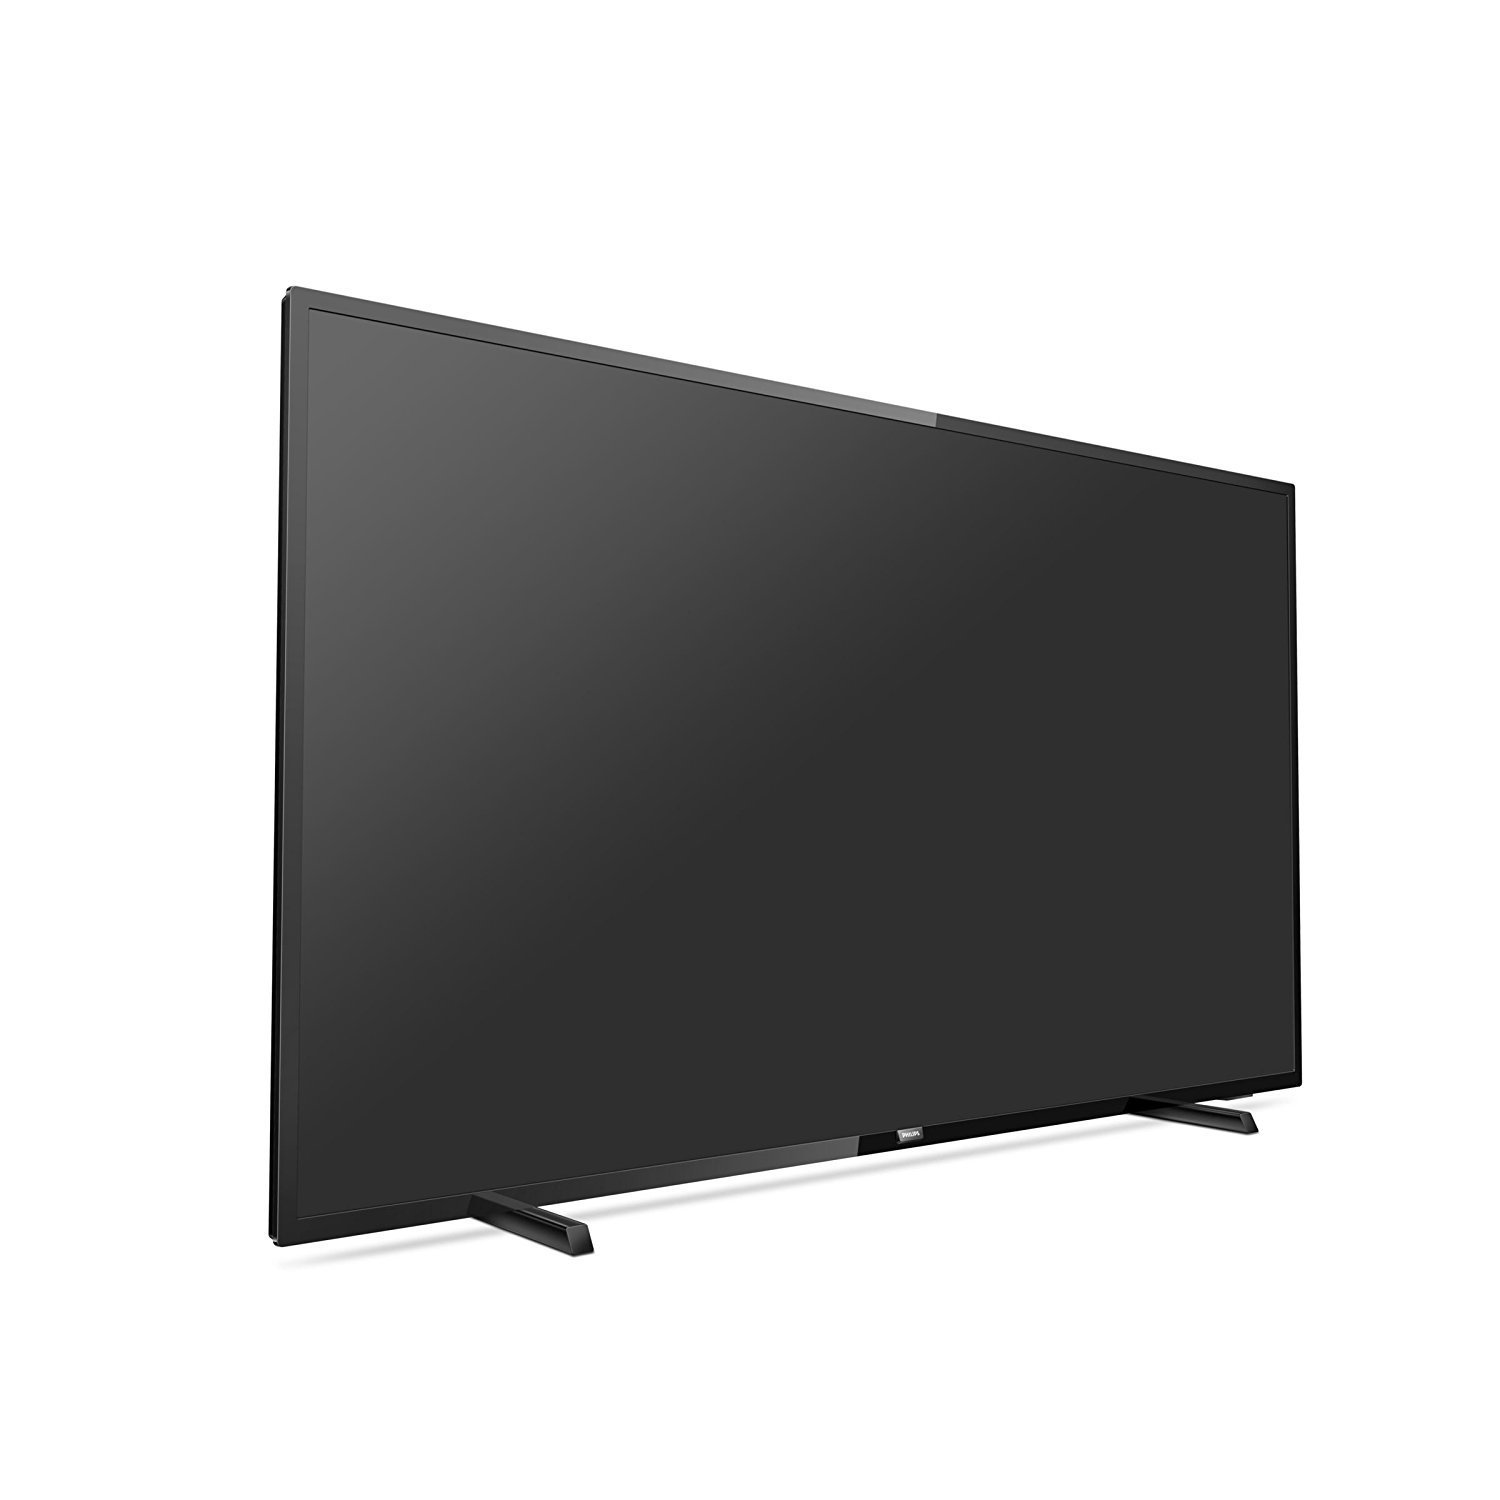 TV LED ULTRAPLANO PHILIPS 50PUS6503-50/126CM 4K UHD 3840 X 2160 – DVB-T/T2/T2-HD/C/S/S2